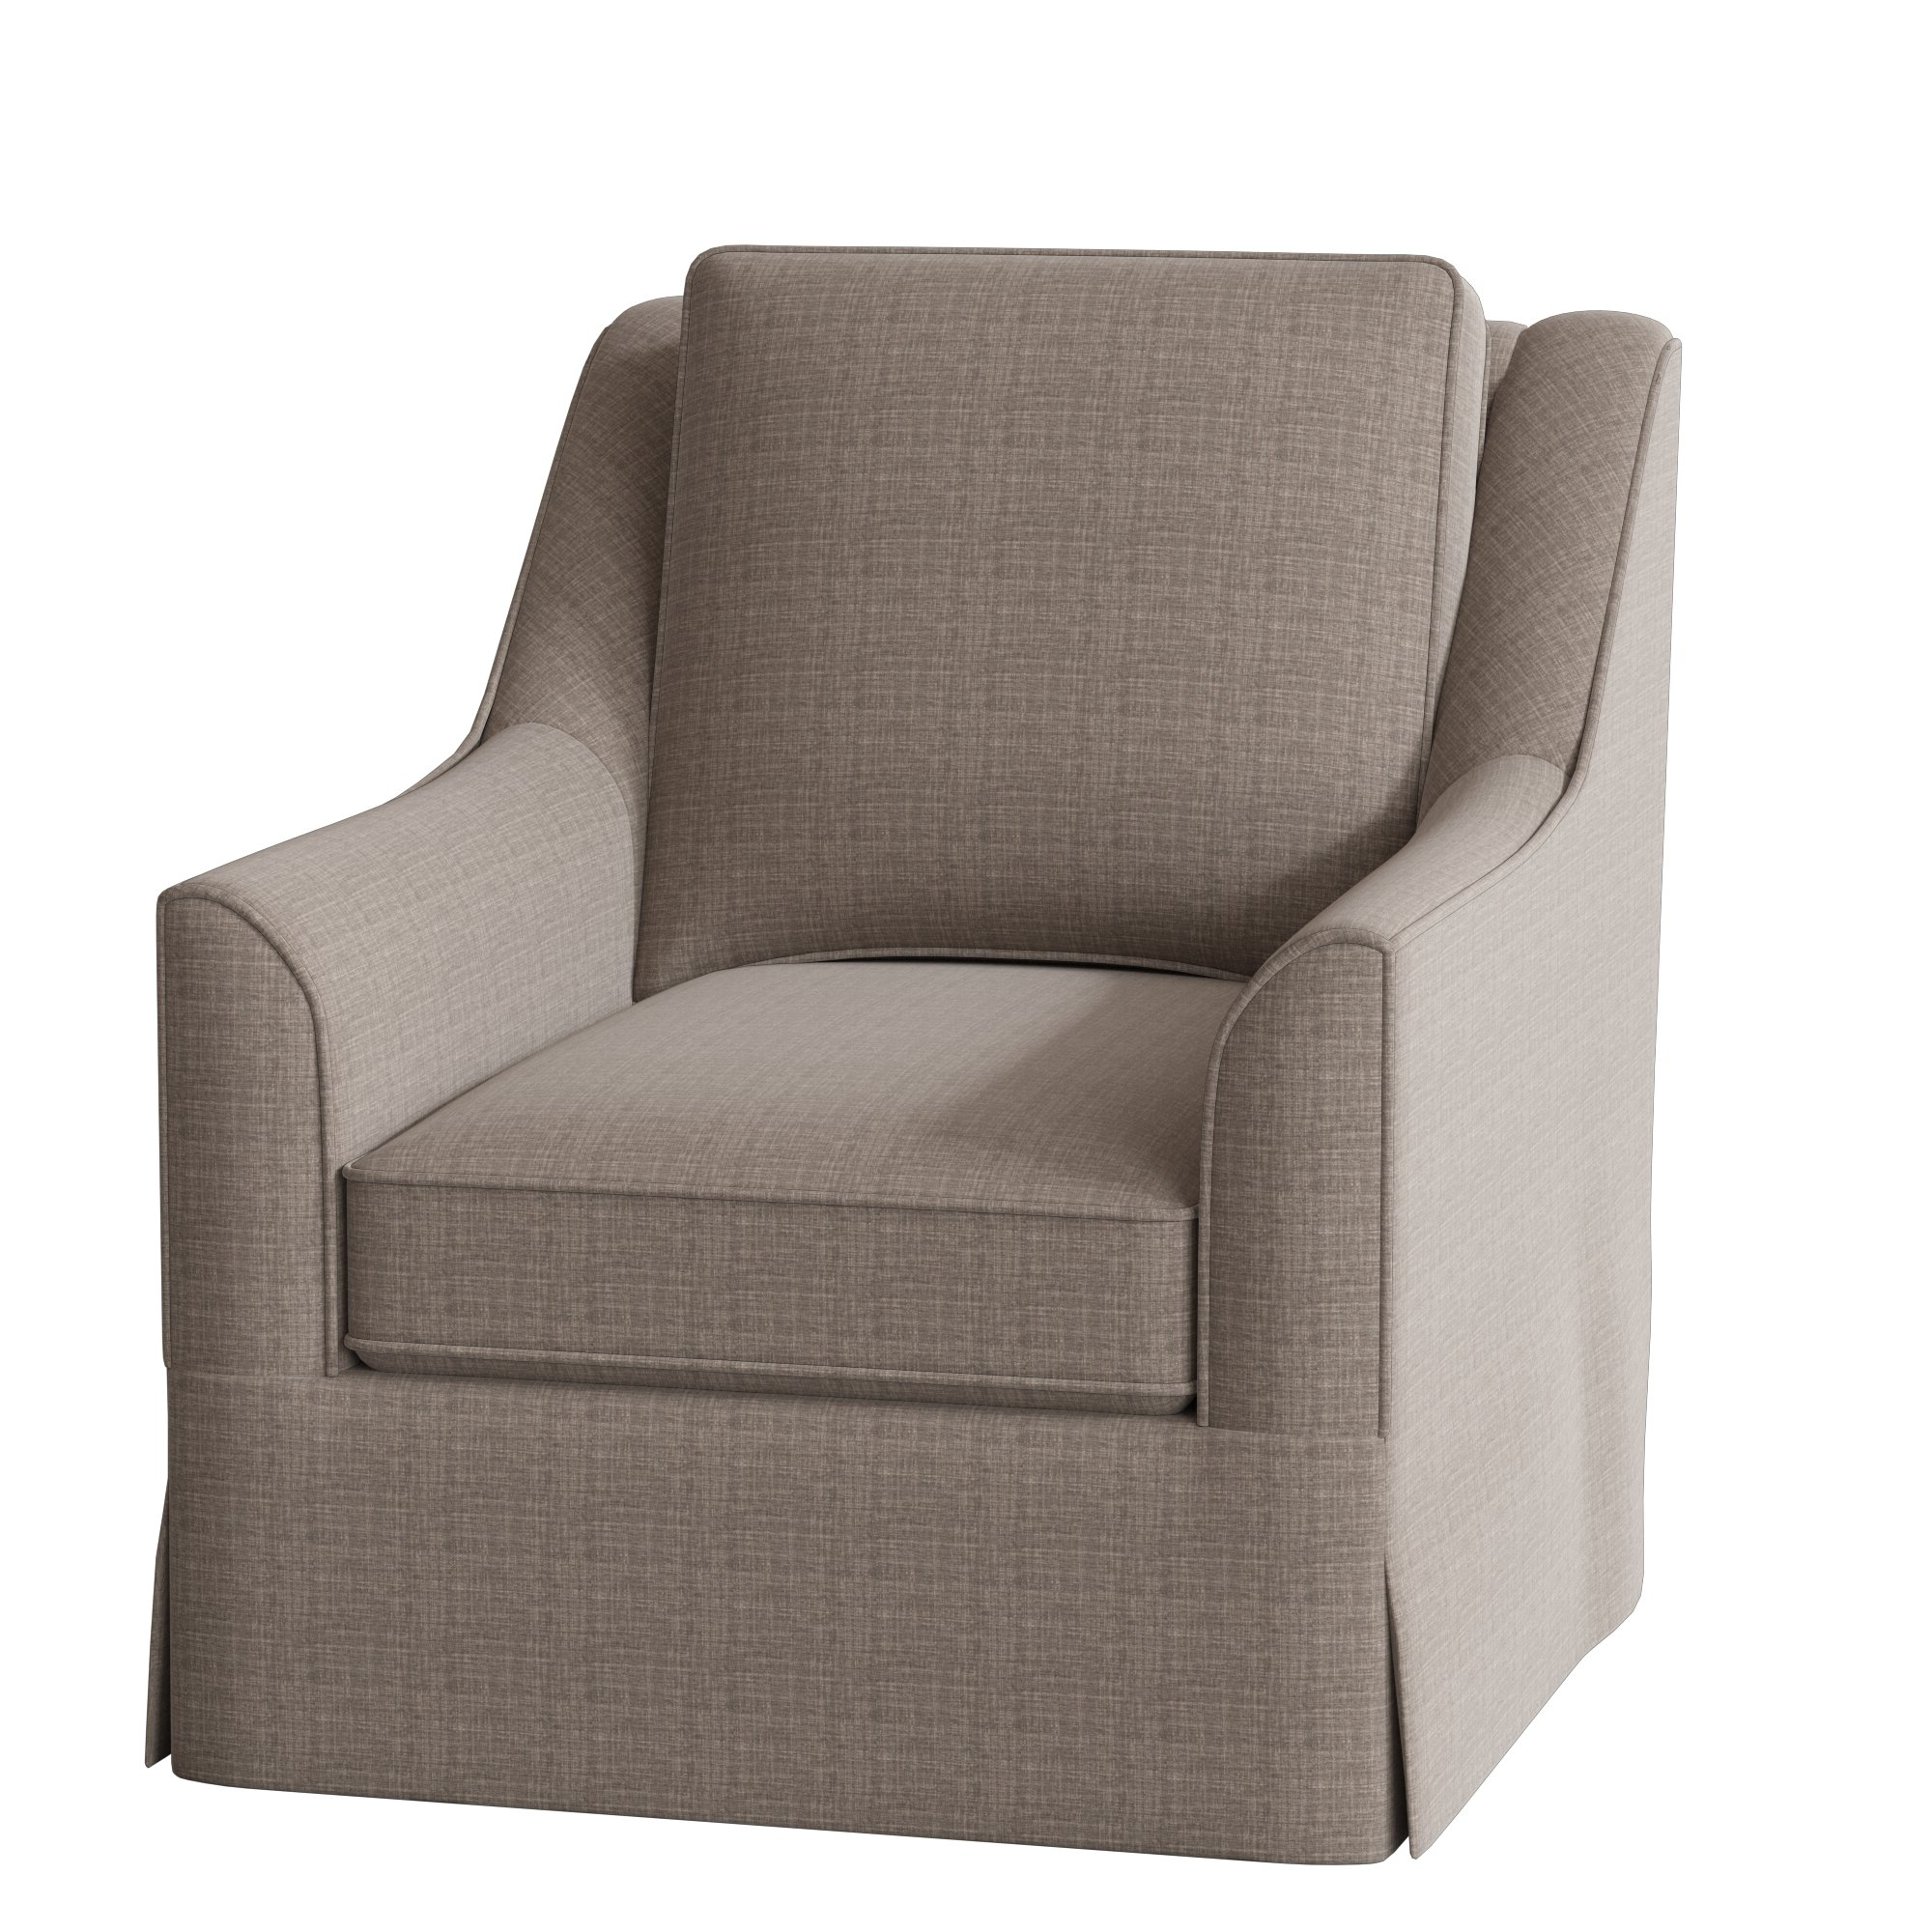 Briseno Barrel Chairs Pertaining To Best And Newest Bella Swivel Armchair (View 9 of 20)